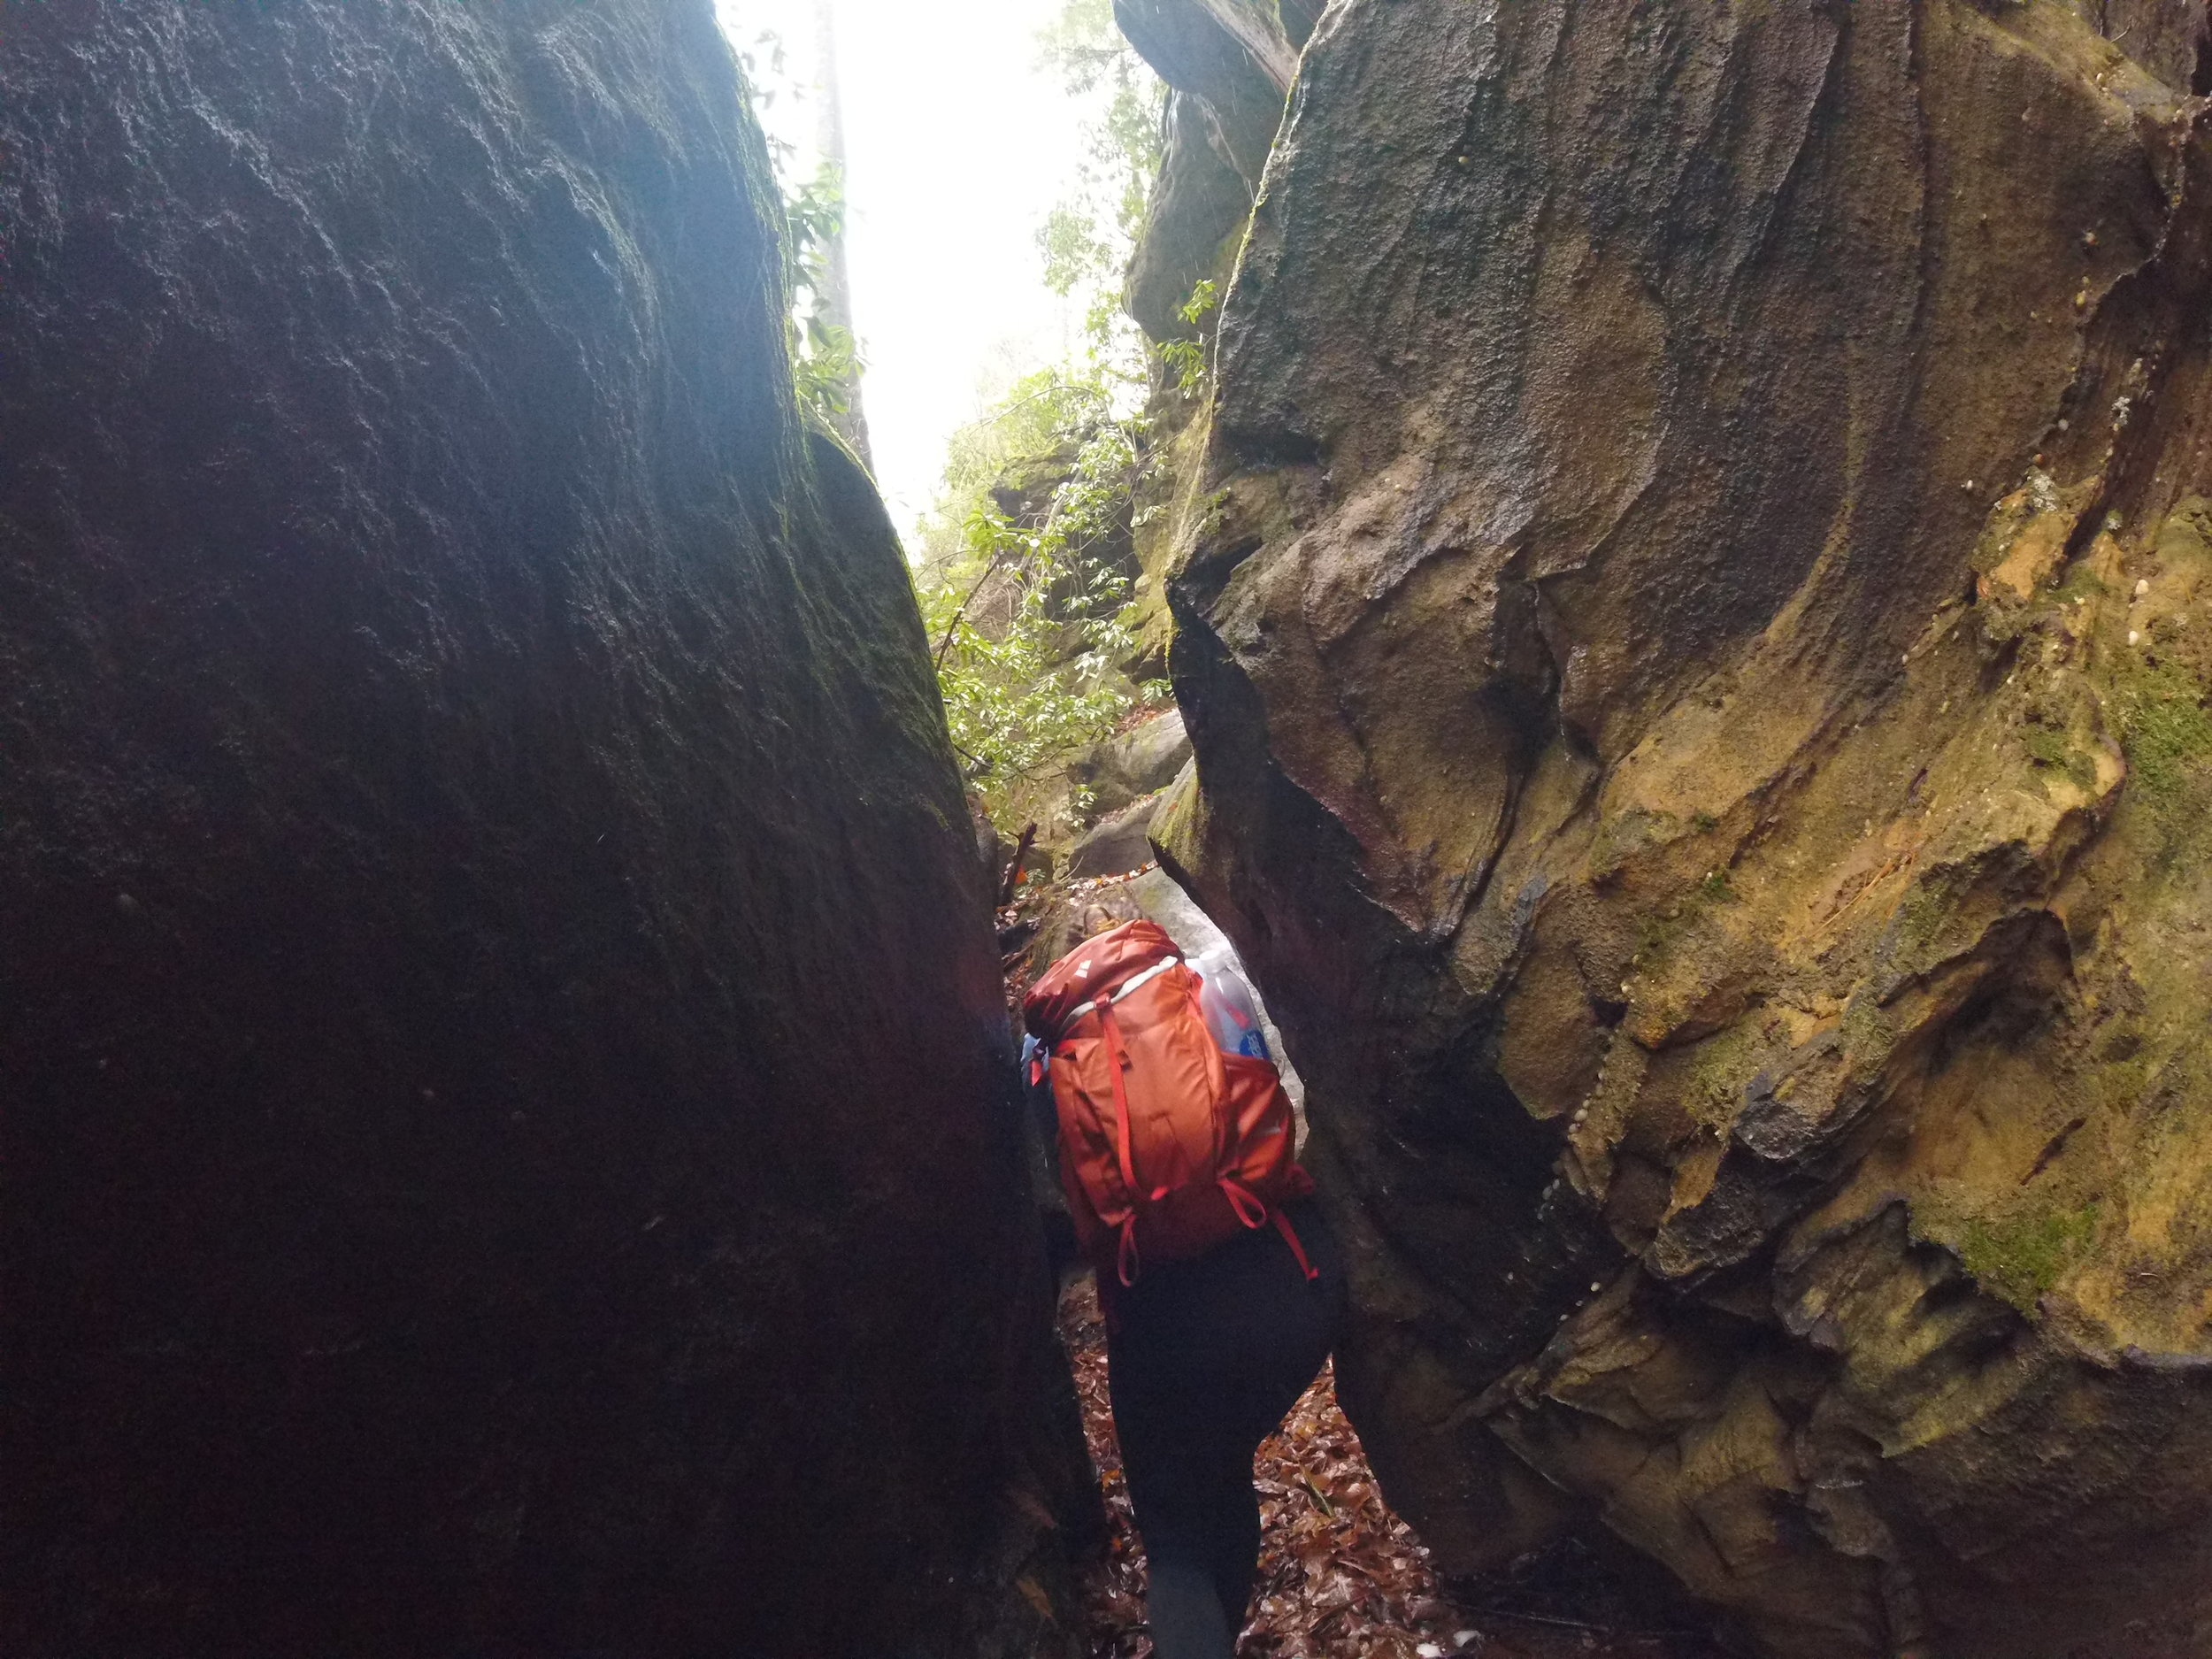 Weaving through giant boulders as we walked along the trail.